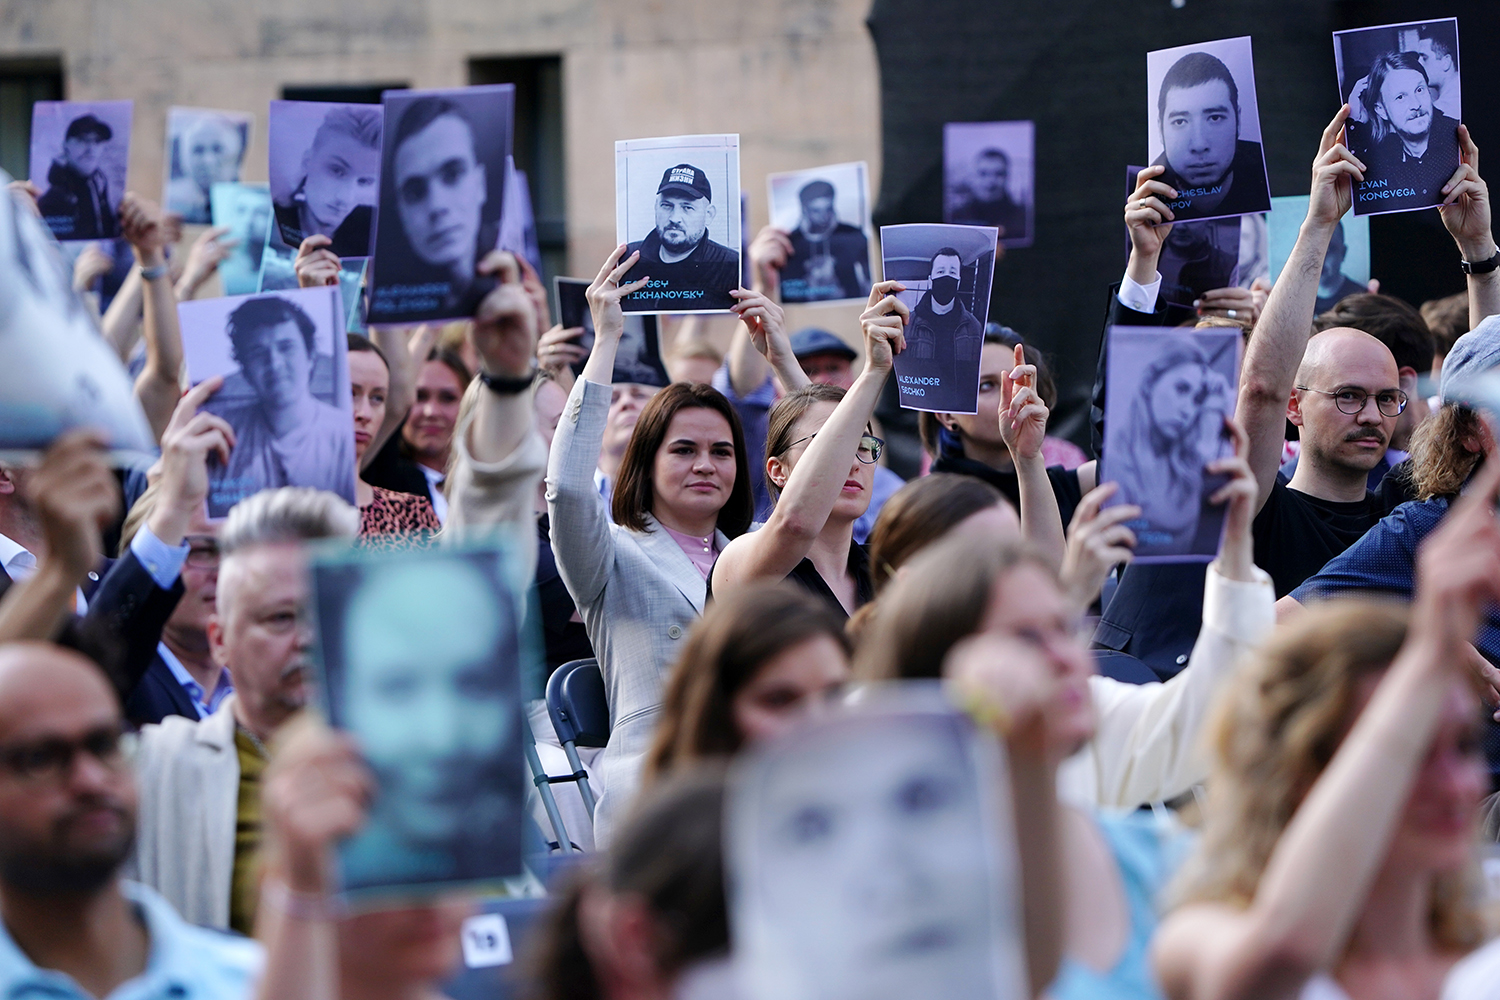 Tsikhanouskaya holds up a photo of her detained husband, Syarhei Tsikhanousky, at the premiere of the documentary Courage during the 71st Berlin International Film Festival on June 11.